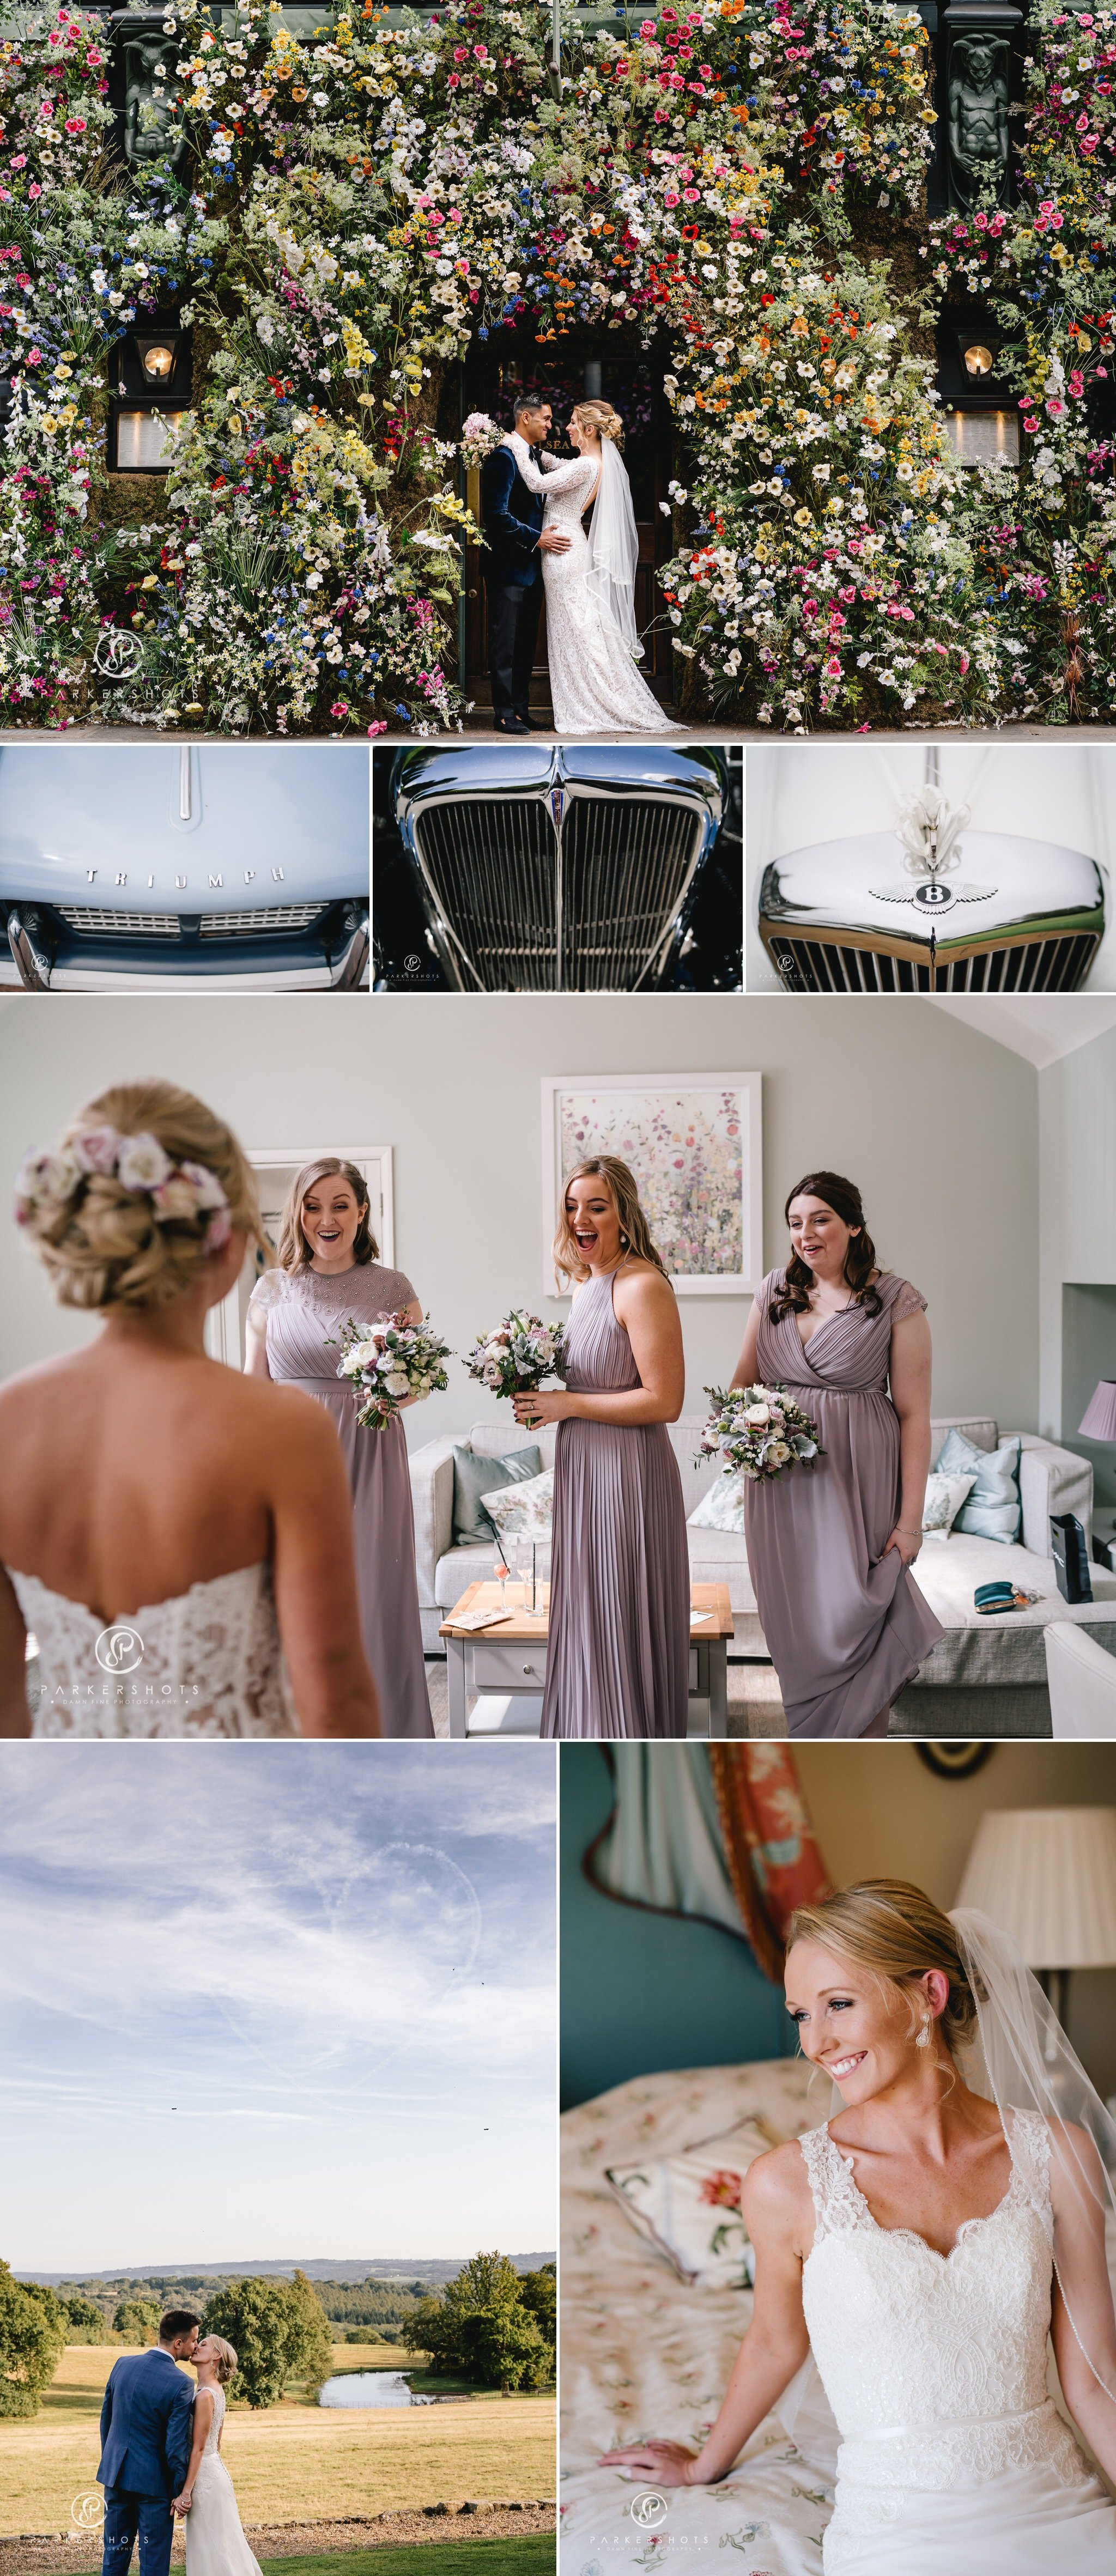 Best of London Wedding Photography 2019